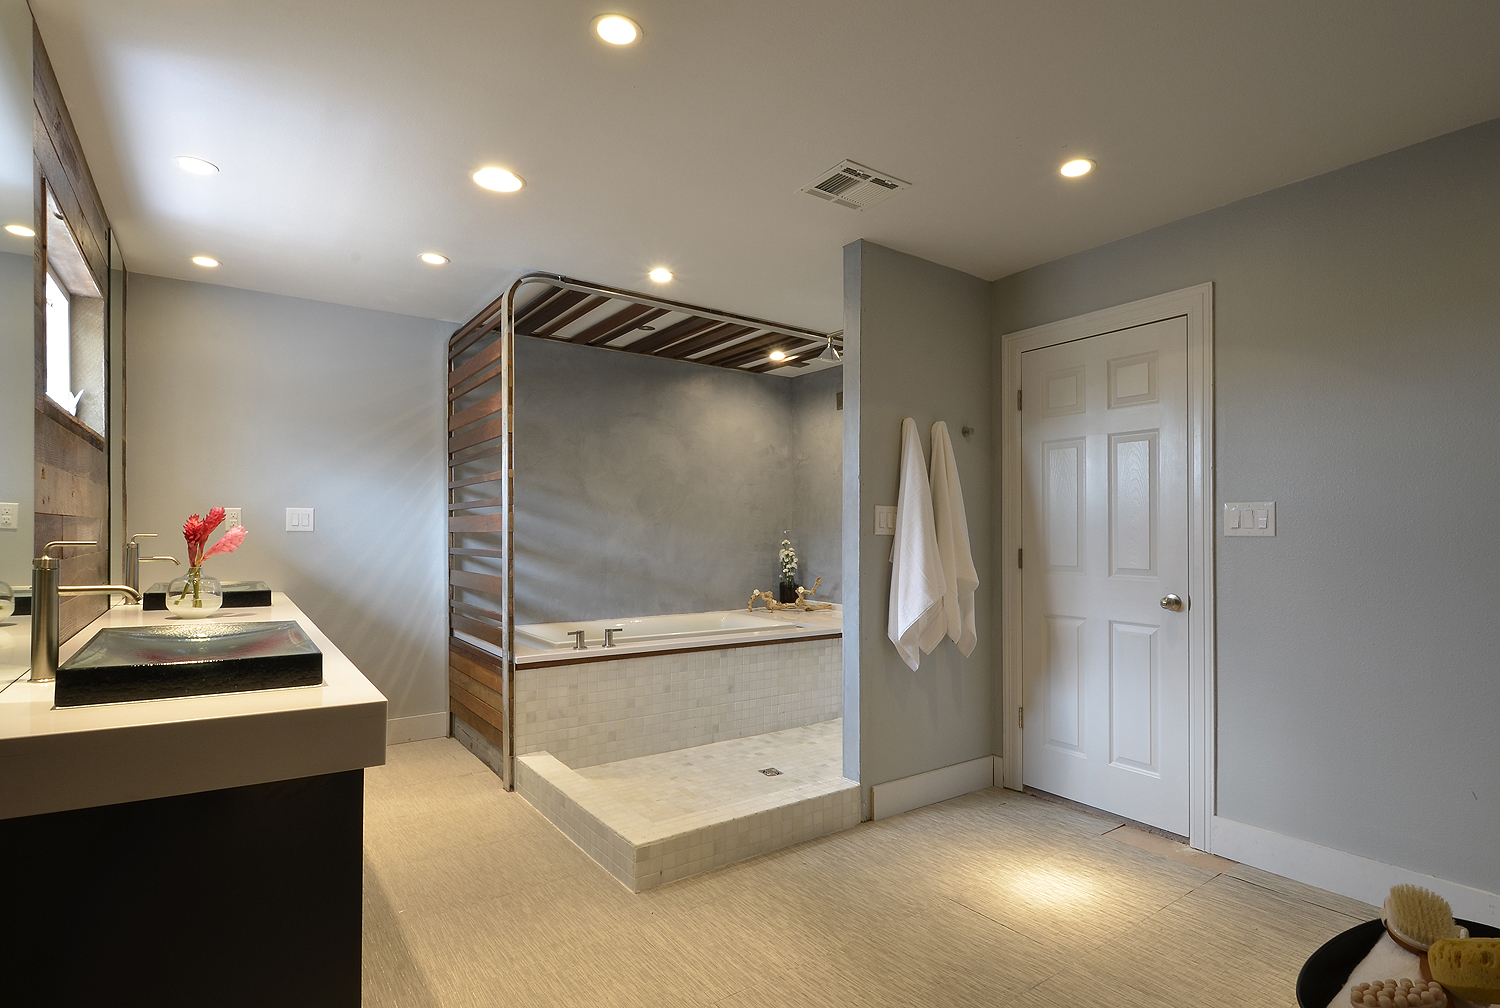 Spa bathroom renovation by greentex builders and hgtv bath for D i y bathroom renovations